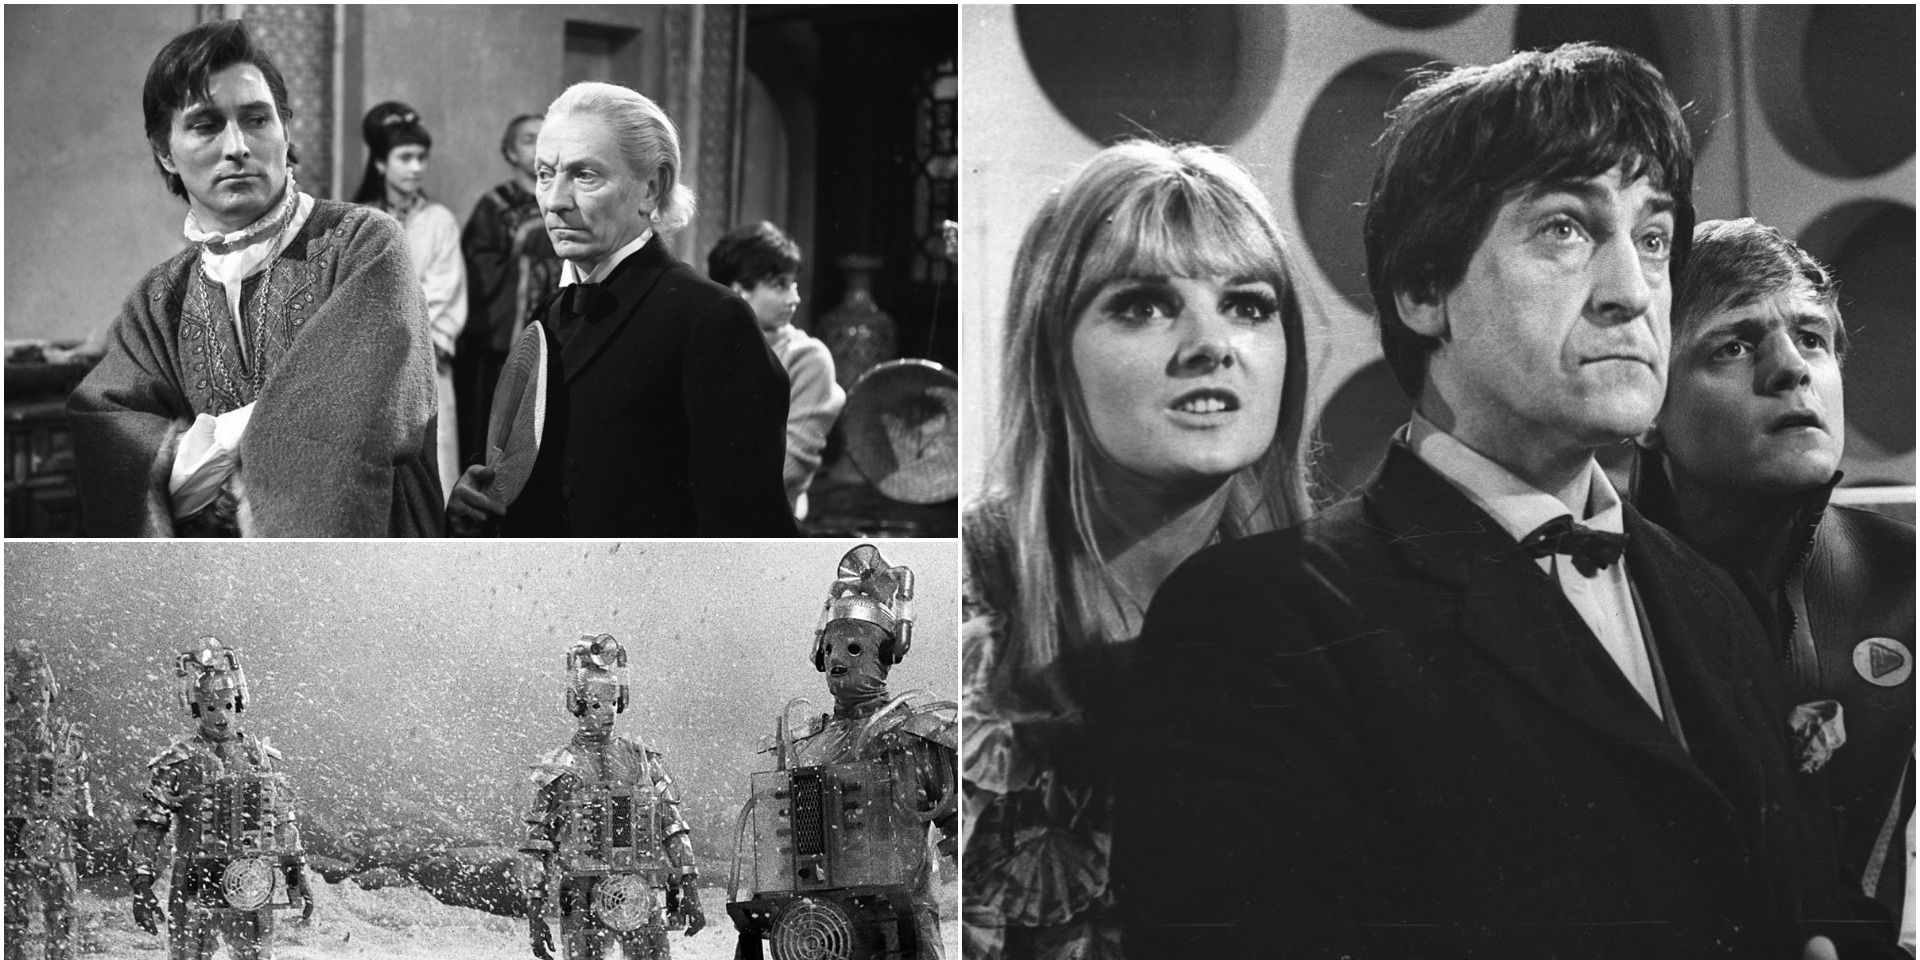 'Doctor Who' missing episodes